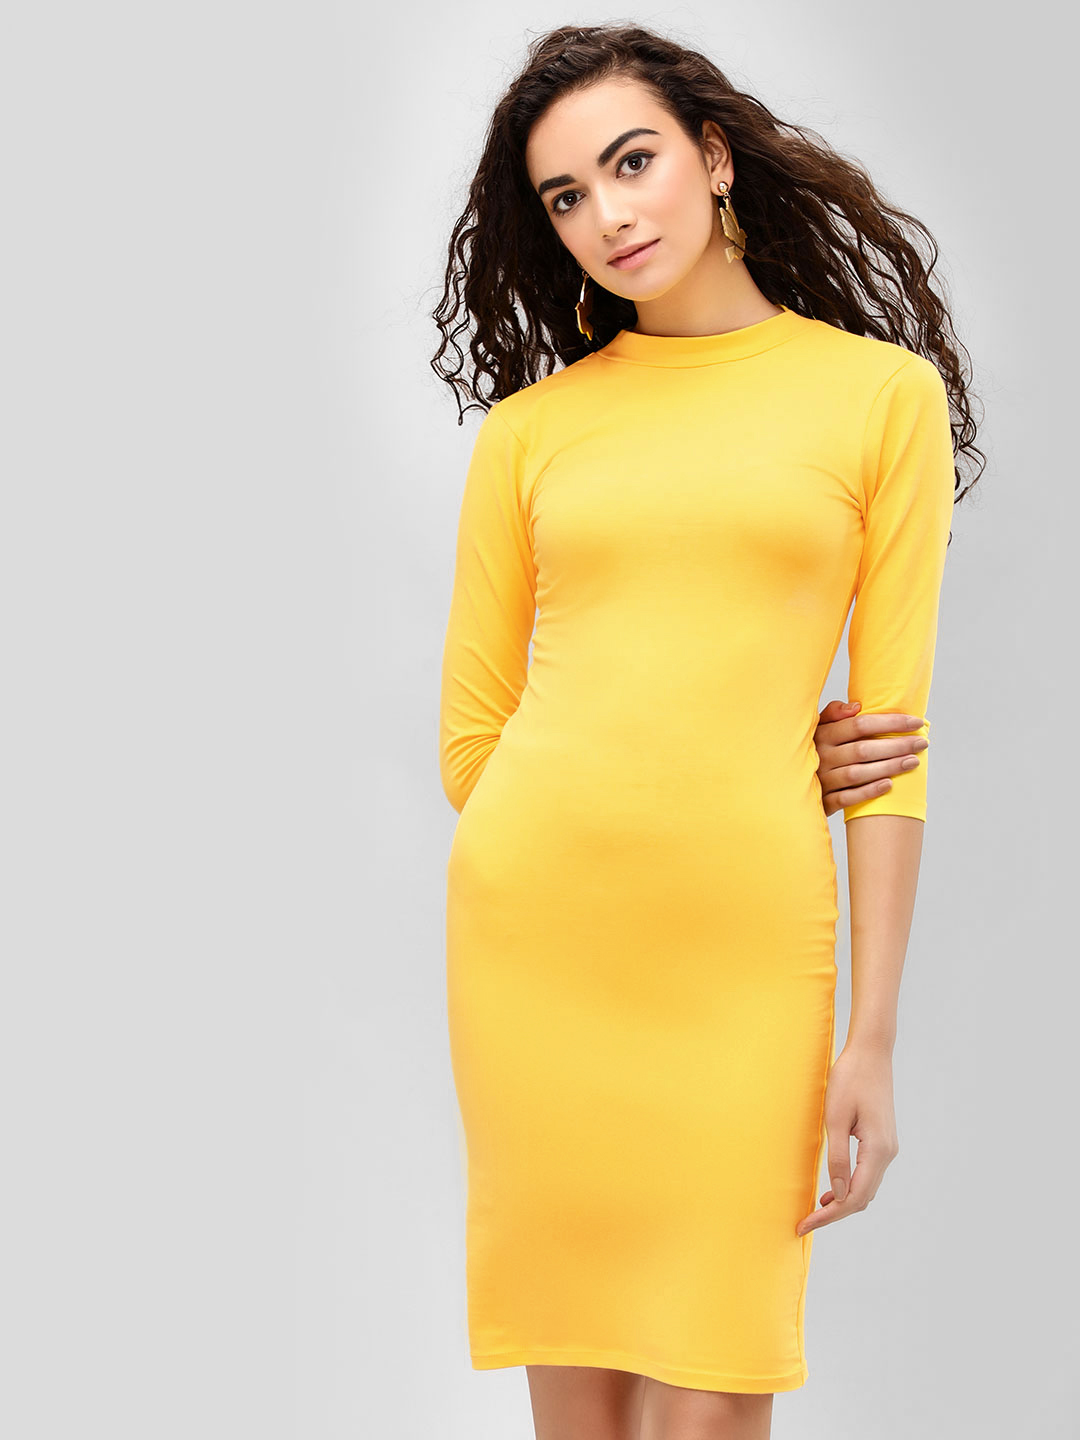 KOOVS Old Gold High Neck Bodycon Dress 1